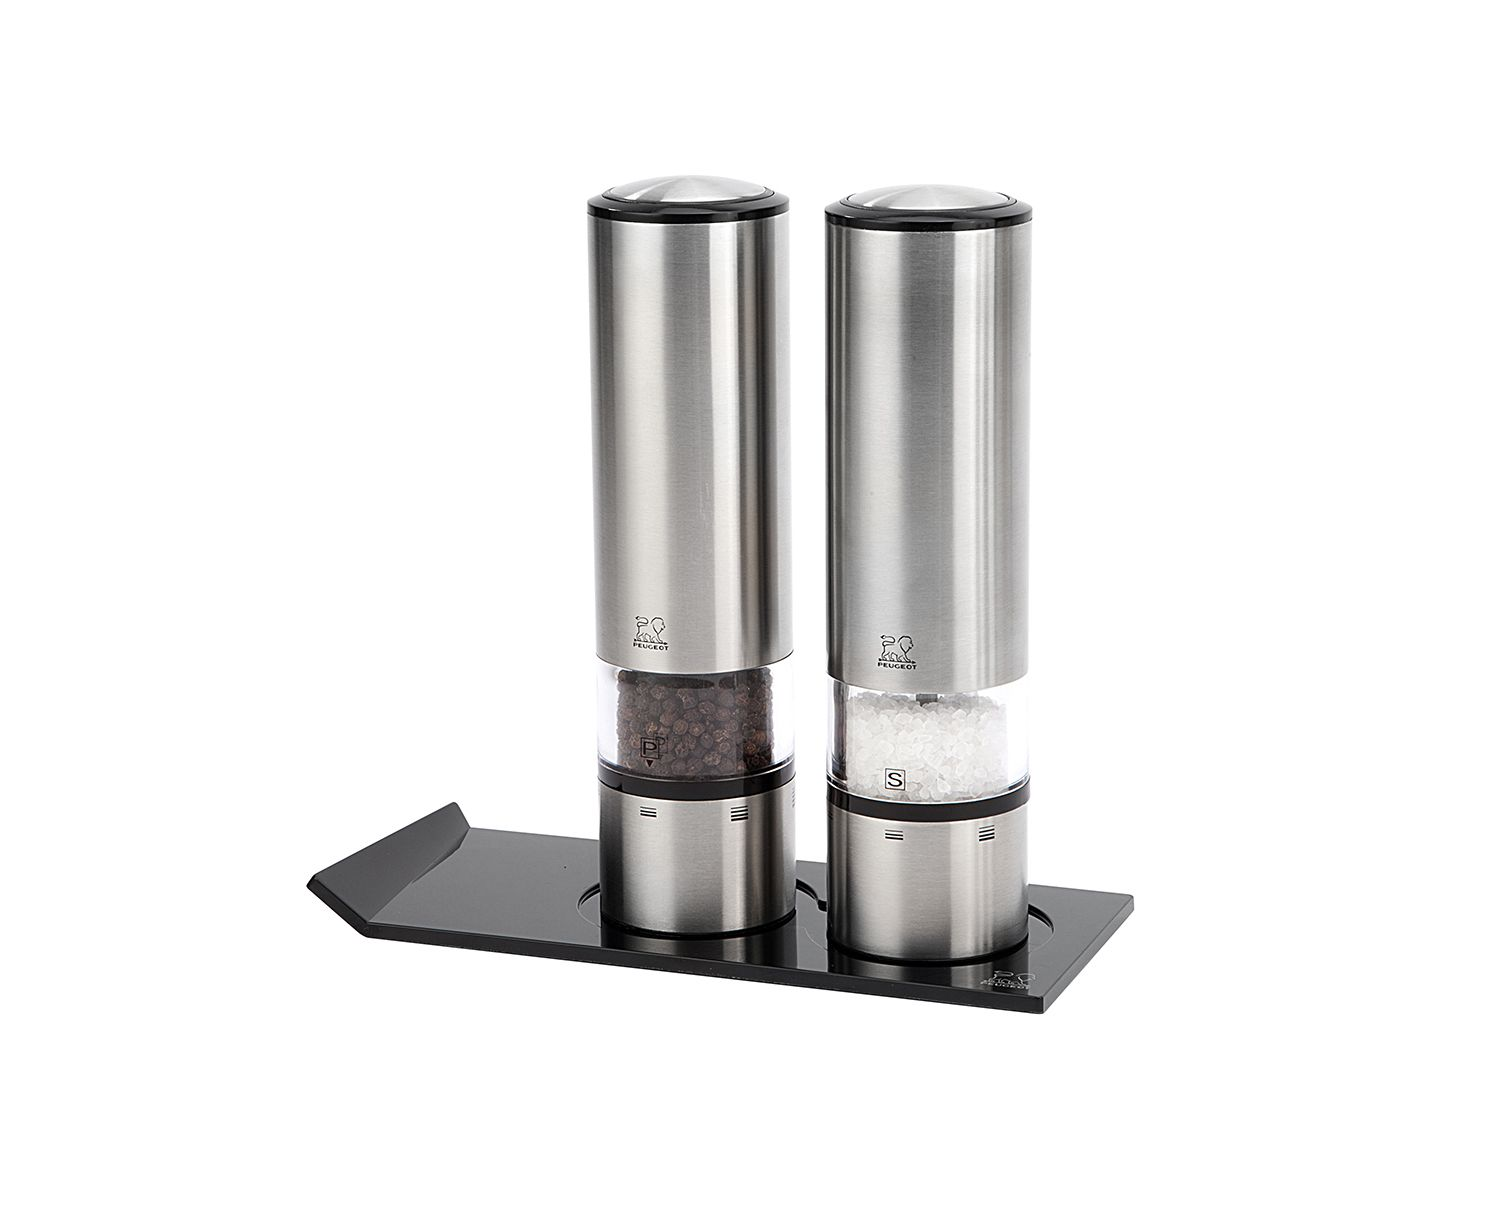 Peugeot Elis Sense Electric Pepper and Salt Mill Set and Tray 8in.jpgHow-to-Decorate-Your-Kitchen-Like-Instagram-